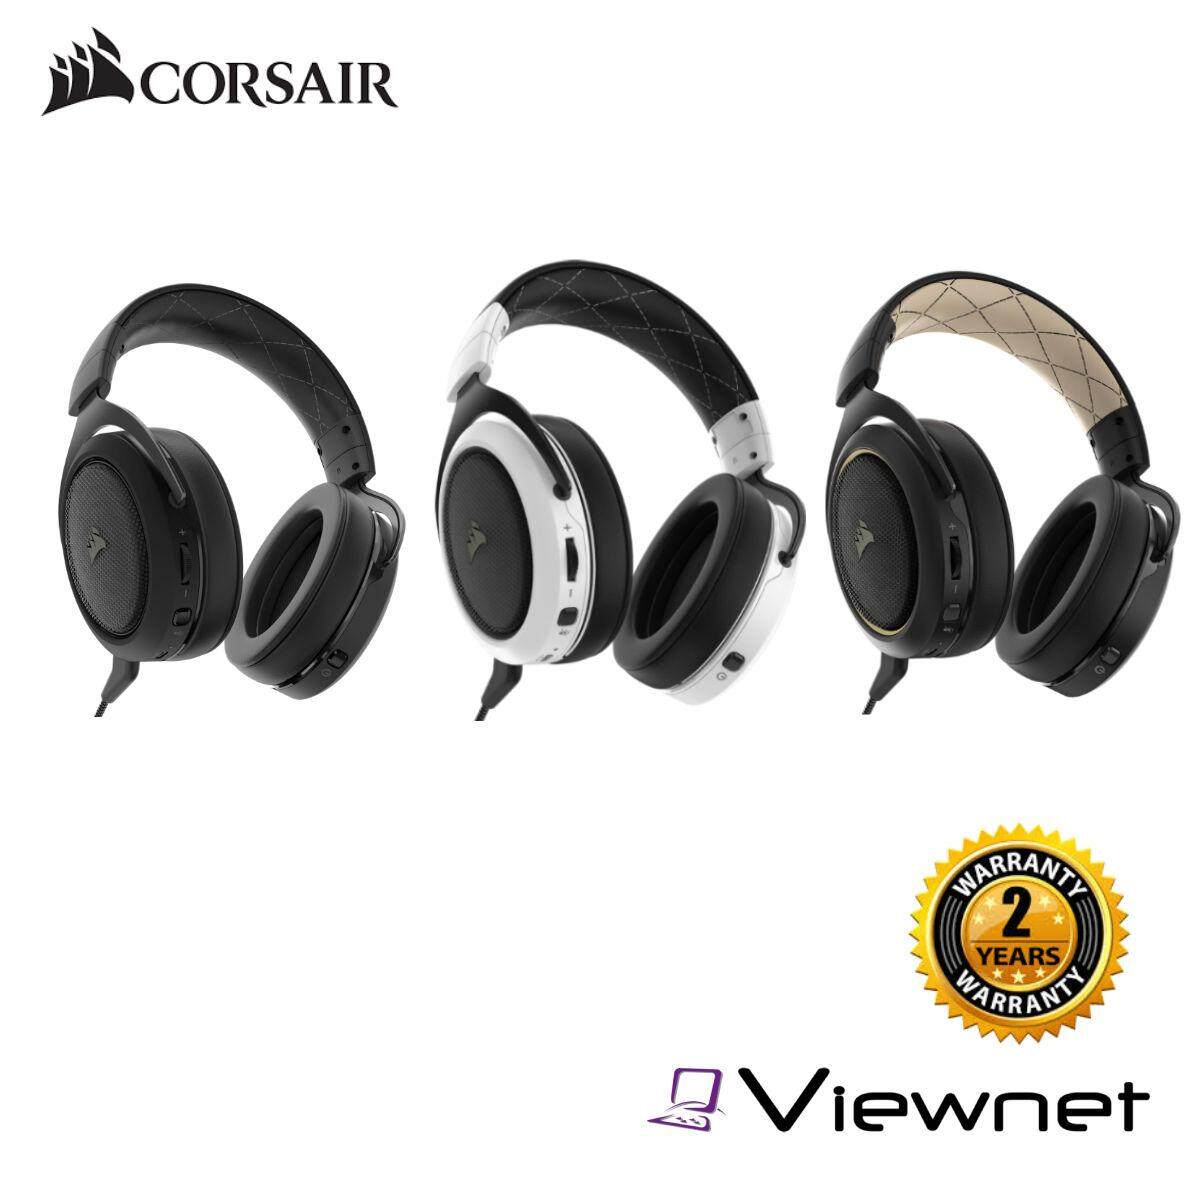 Over-the-Ear Headphones for the Best Prices in Malaysia